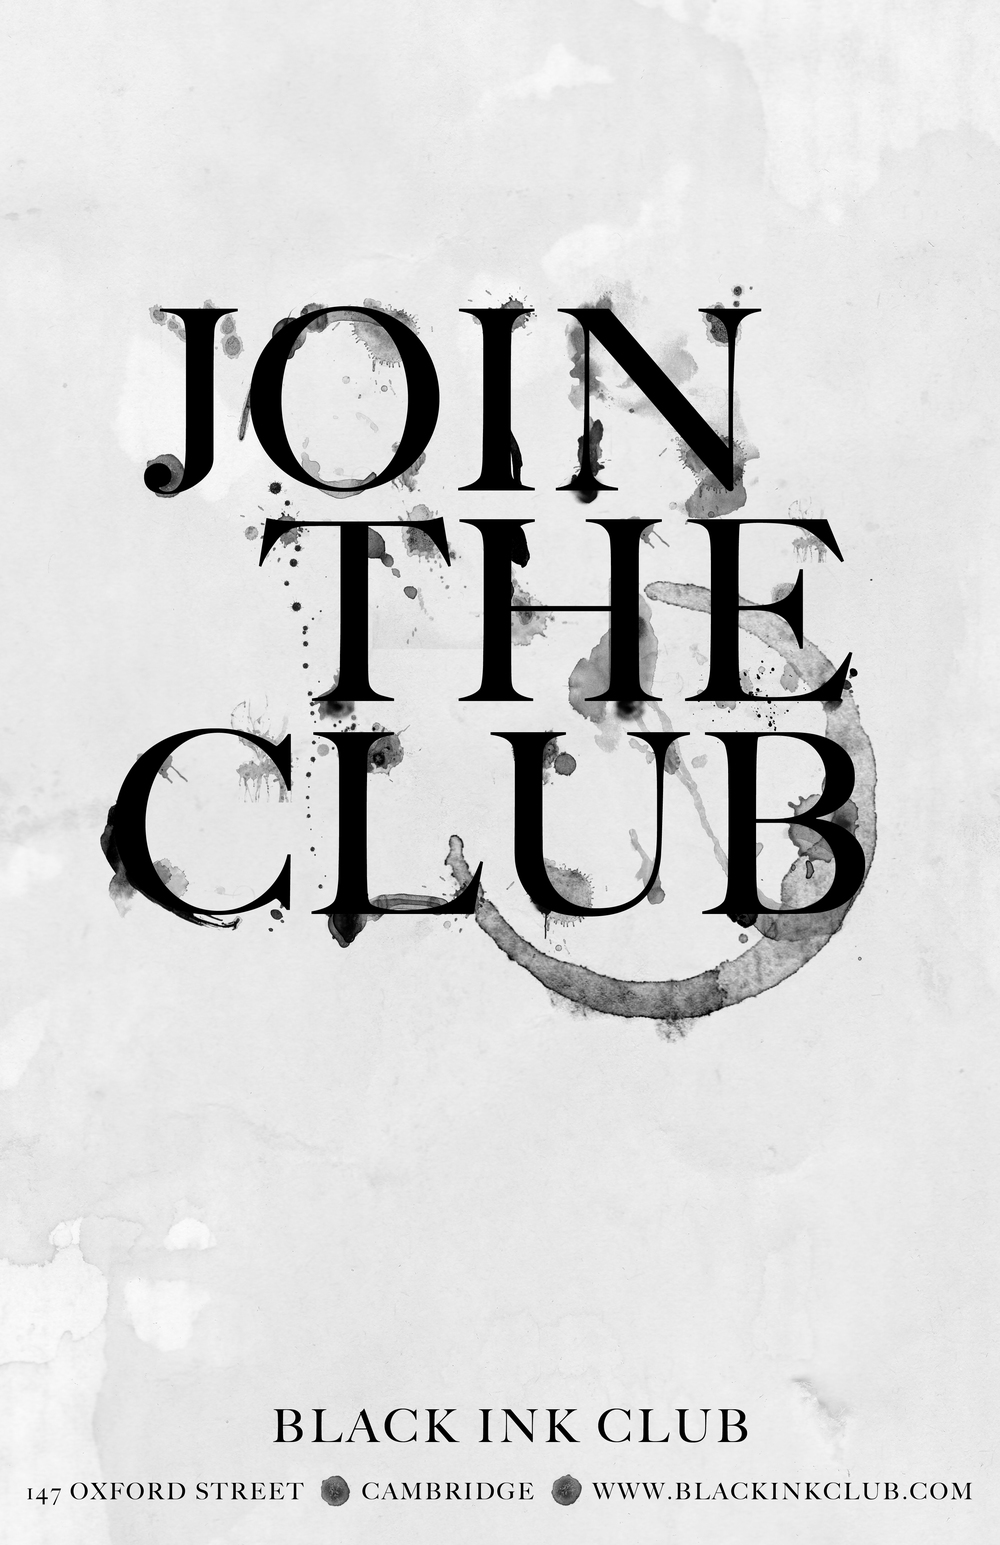 club advertisement prototype